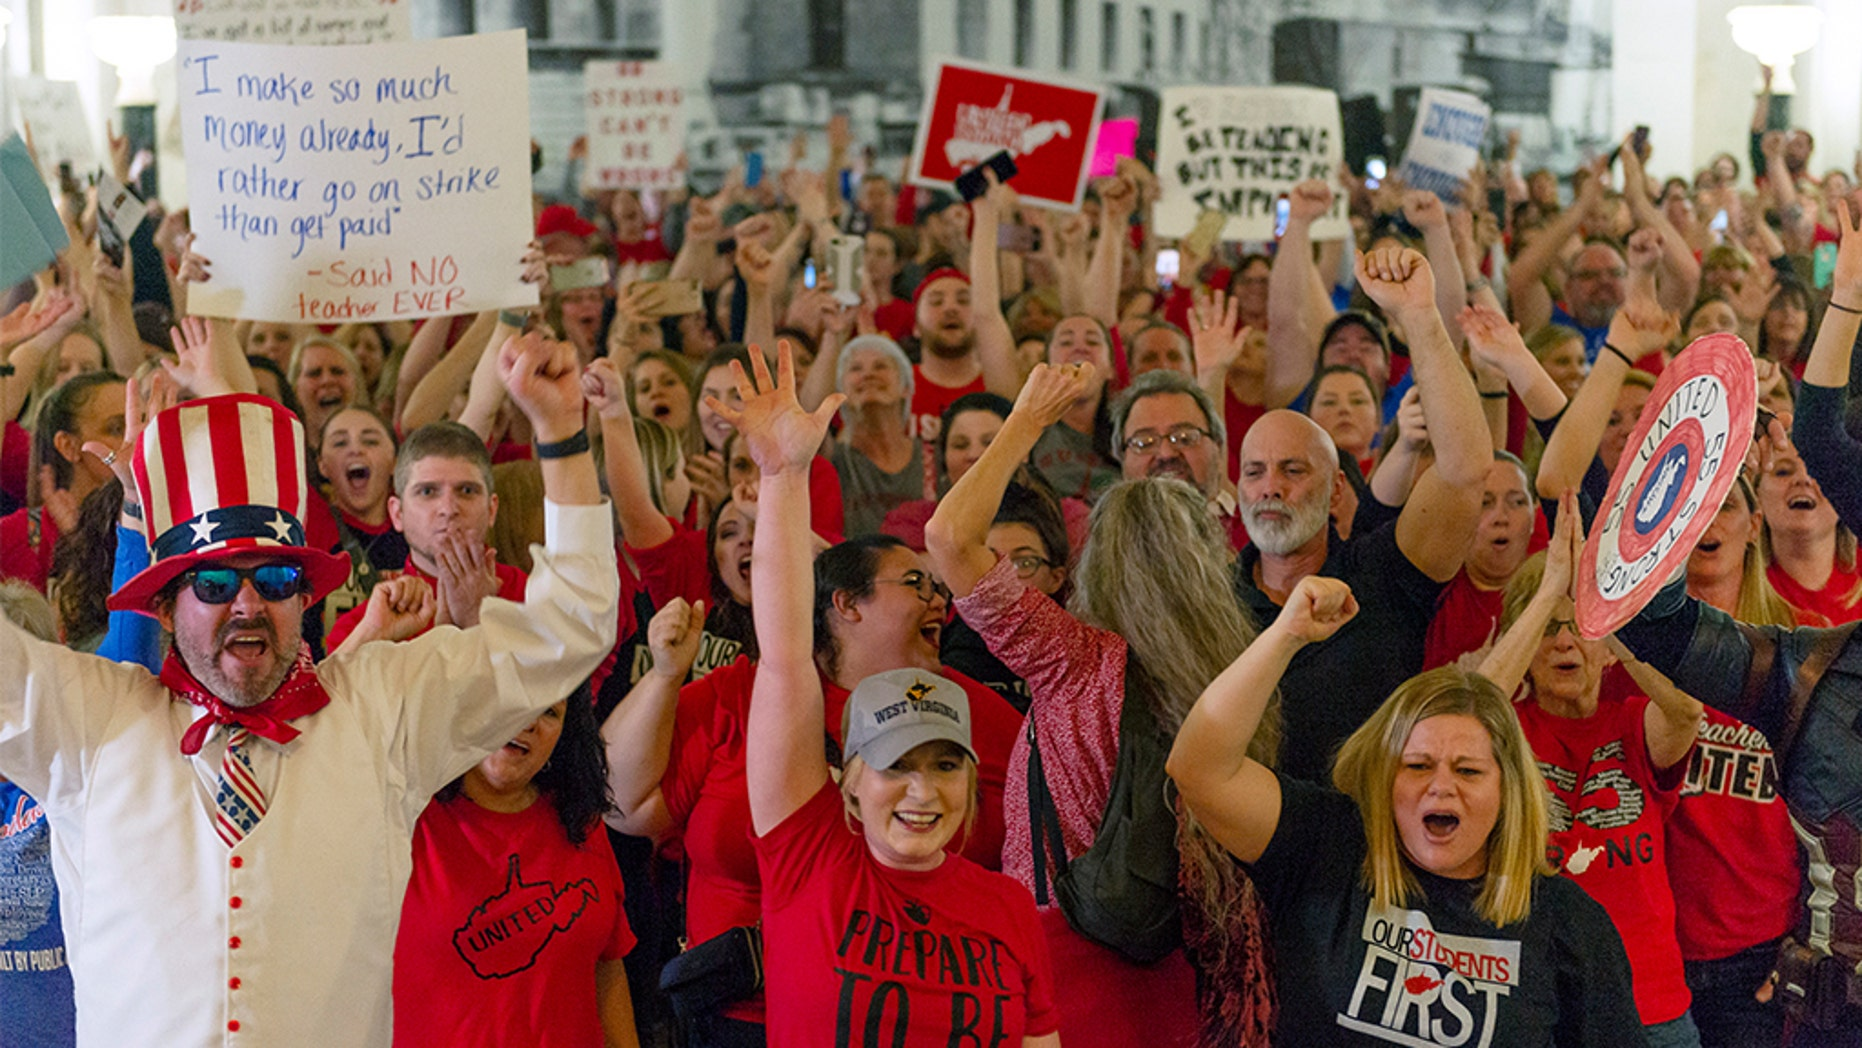 A bill that closed West Virginia schools as teachers went on strike was tabled by state lawmakers hours after the protest began on Feb. 19, 2019.